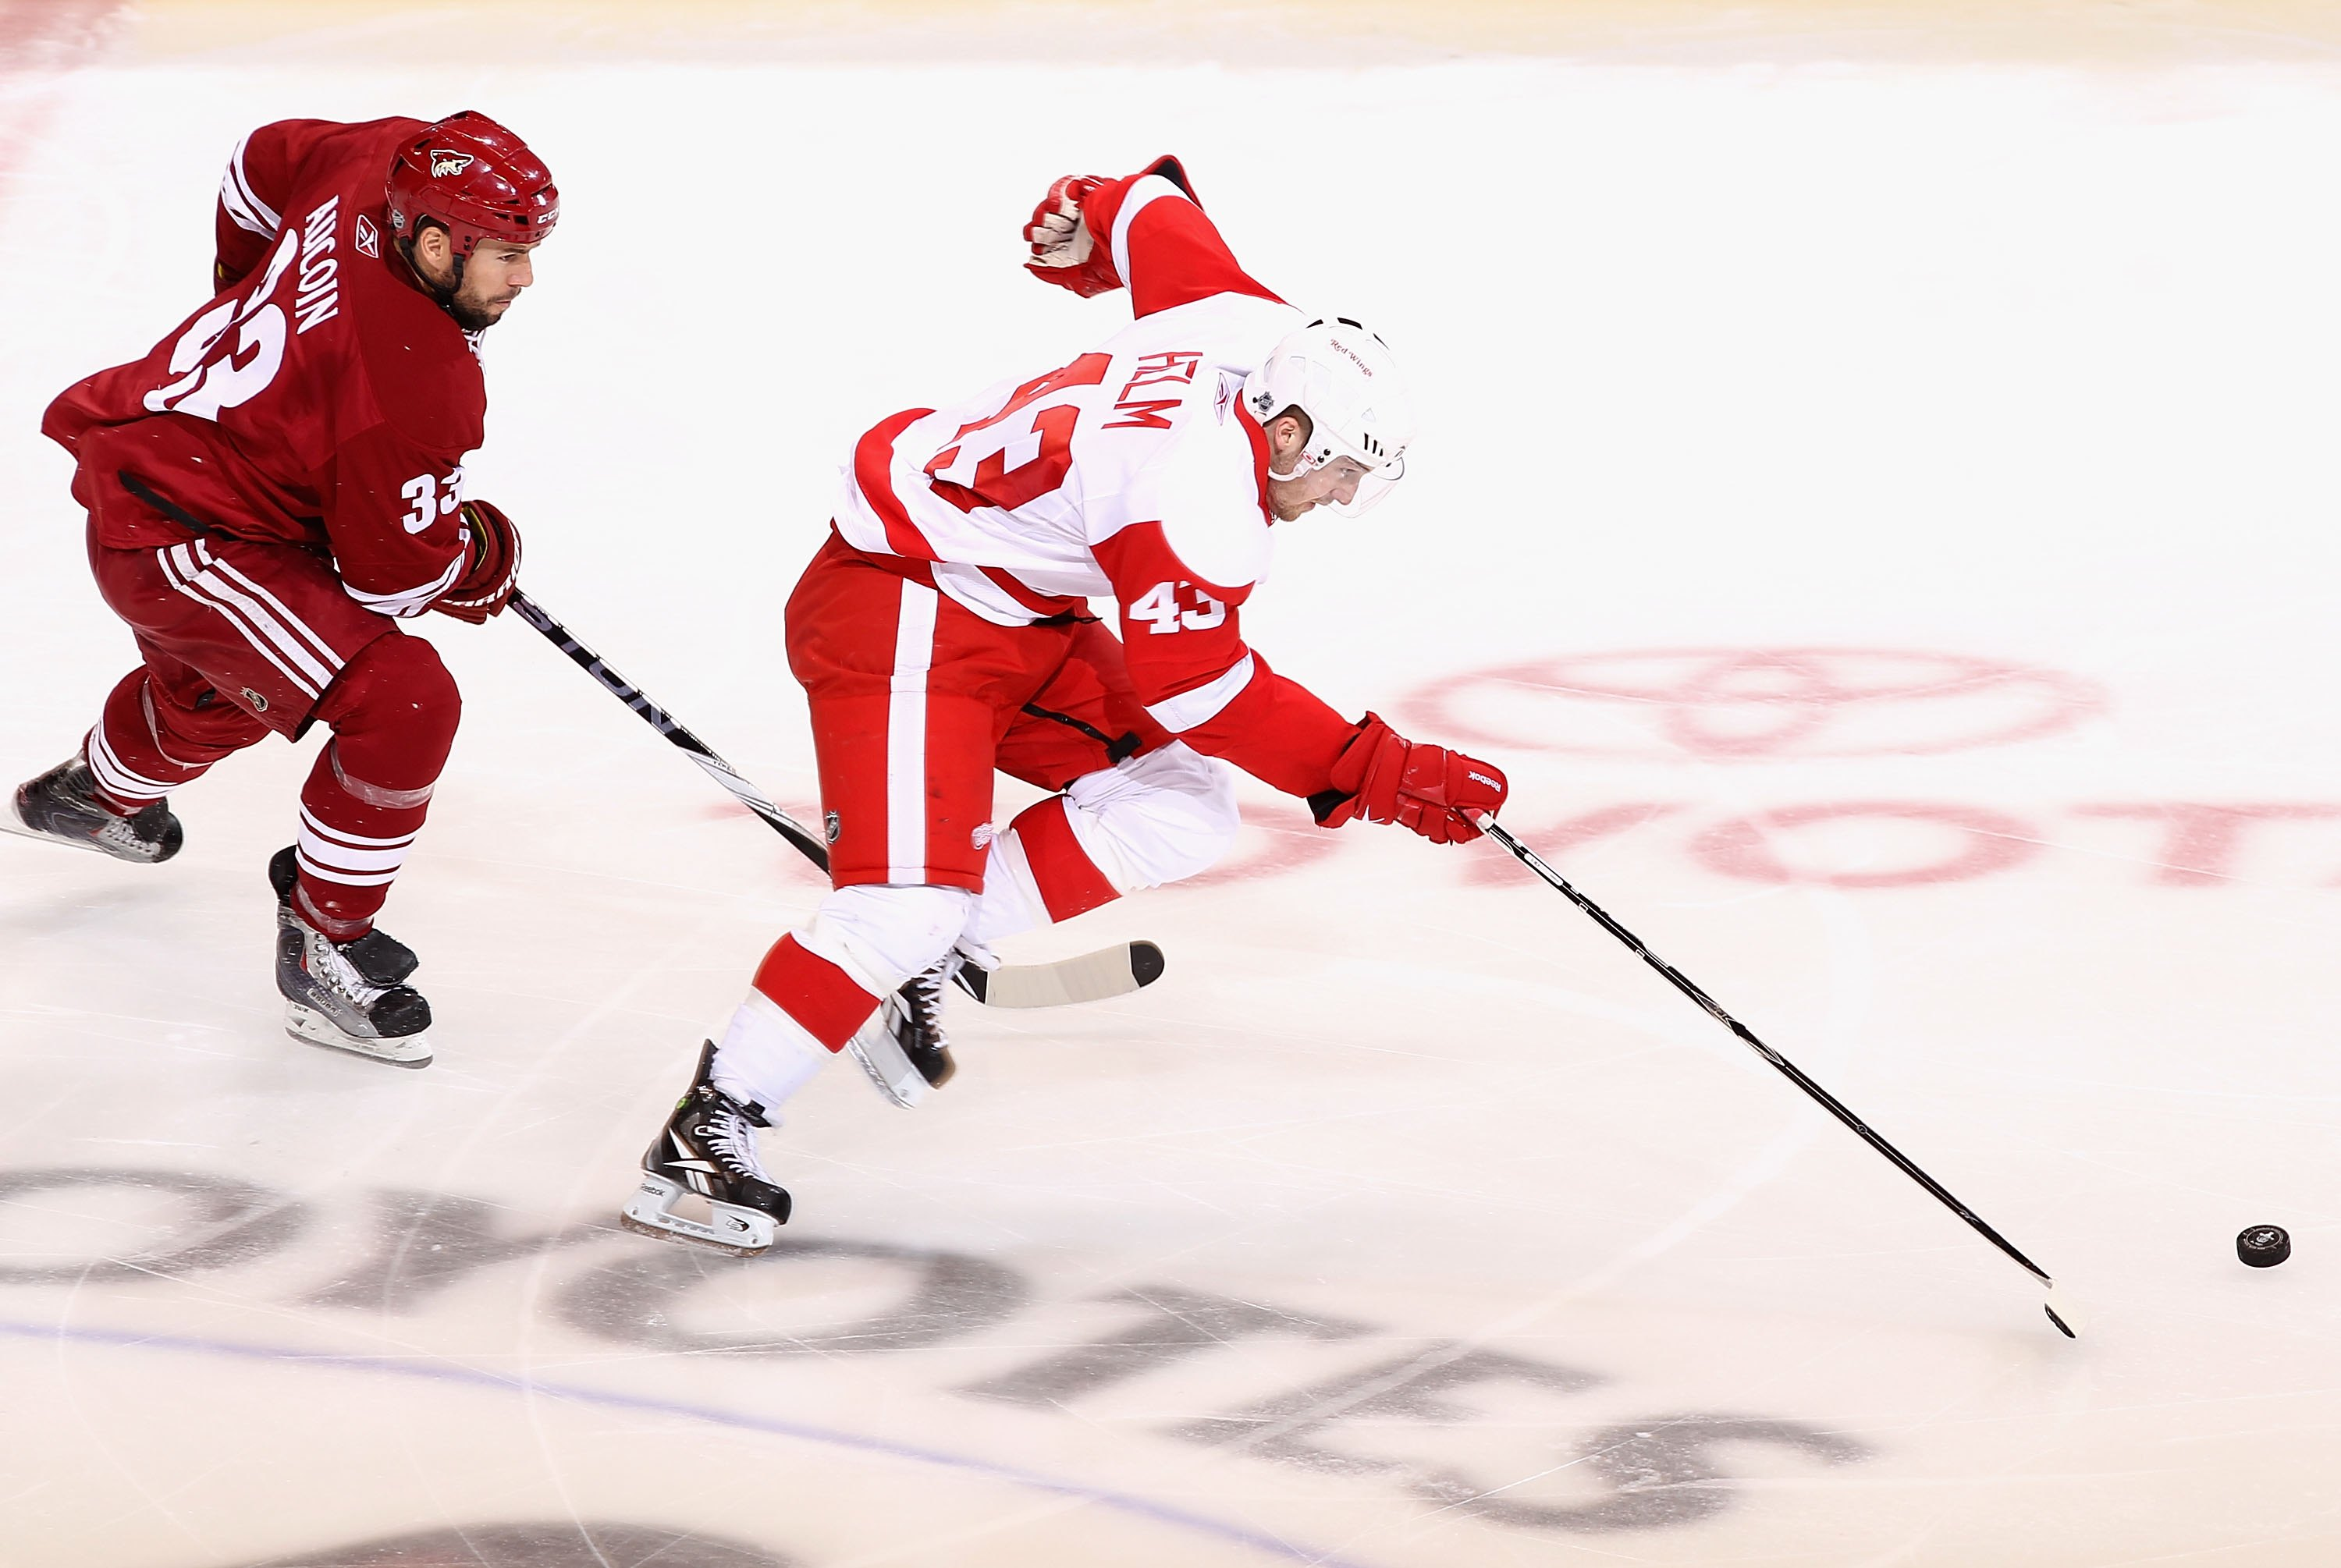 GLENDALE, AZ - APRIL 27:  Darren Helm #43 of the Detroit Red Wings skates with the puck past the Phoenix Coyotes in Game Seven of the Western Conference Quarterfinals during the 2010 NHL Stanley Cup Playoffs at Jobing.com Arena on April 27, 2010 in Glenda